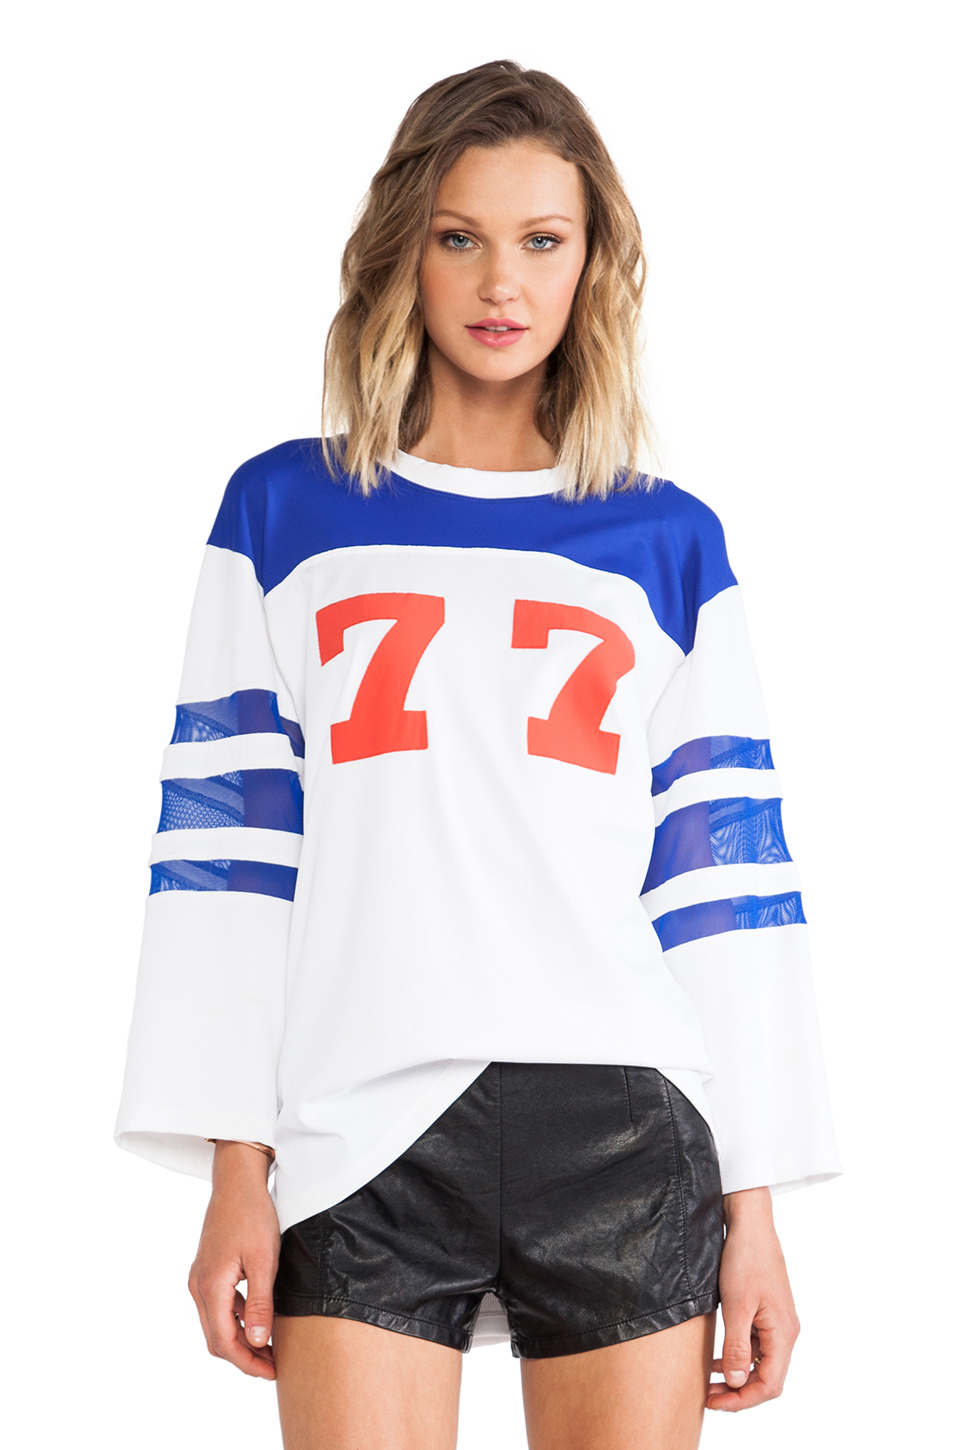 MINIMALE ANIMALE Johnny Utah Tee Jersey in Latigo Blue | REVOLVE